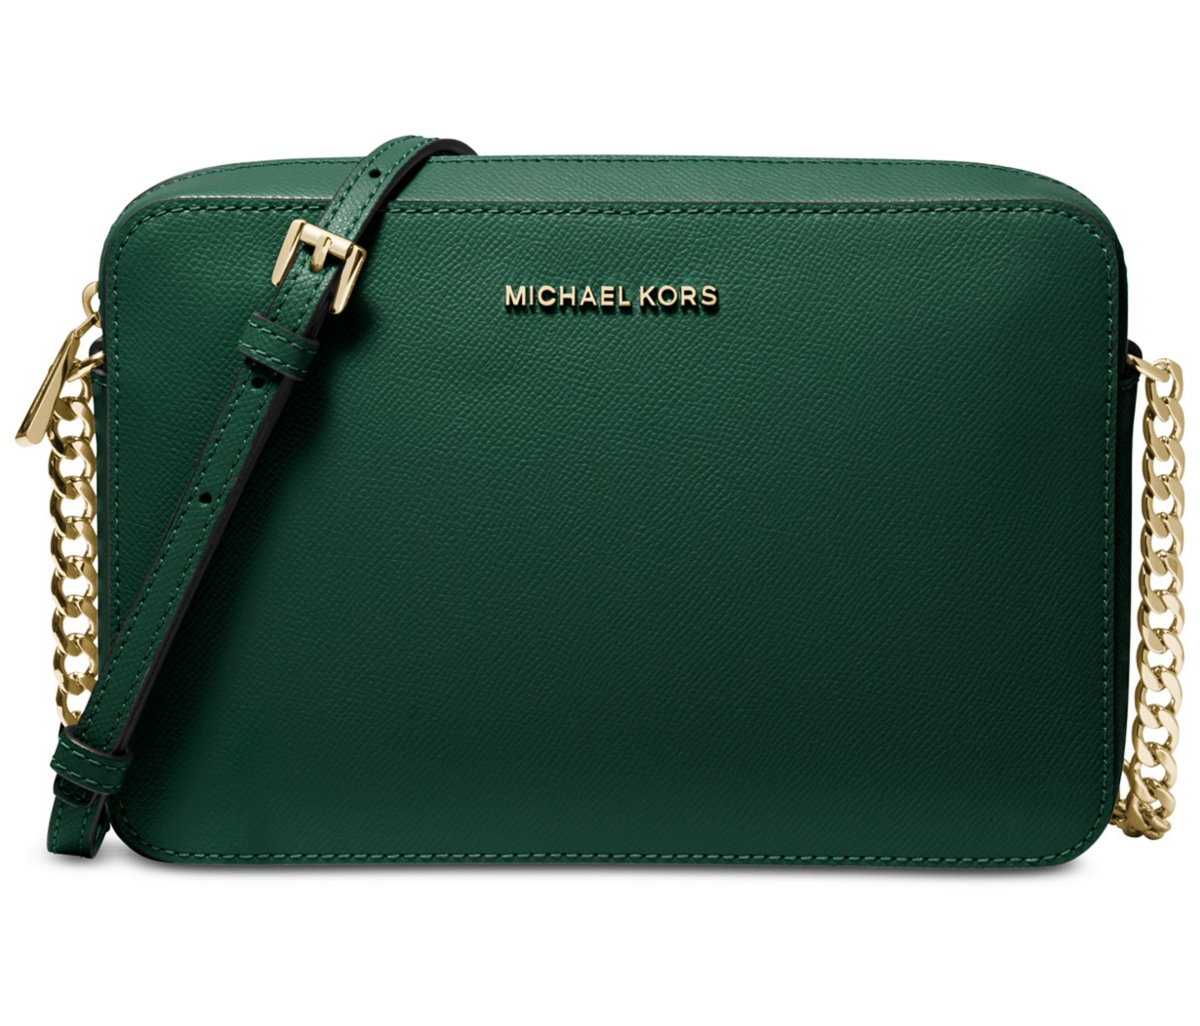 ca4d943f1 Michael Kors Bag Green Macy's. See it: Get the MICHAEL by Michael Kors Jet  Set East West Crossgrain Leather Crossbody ...